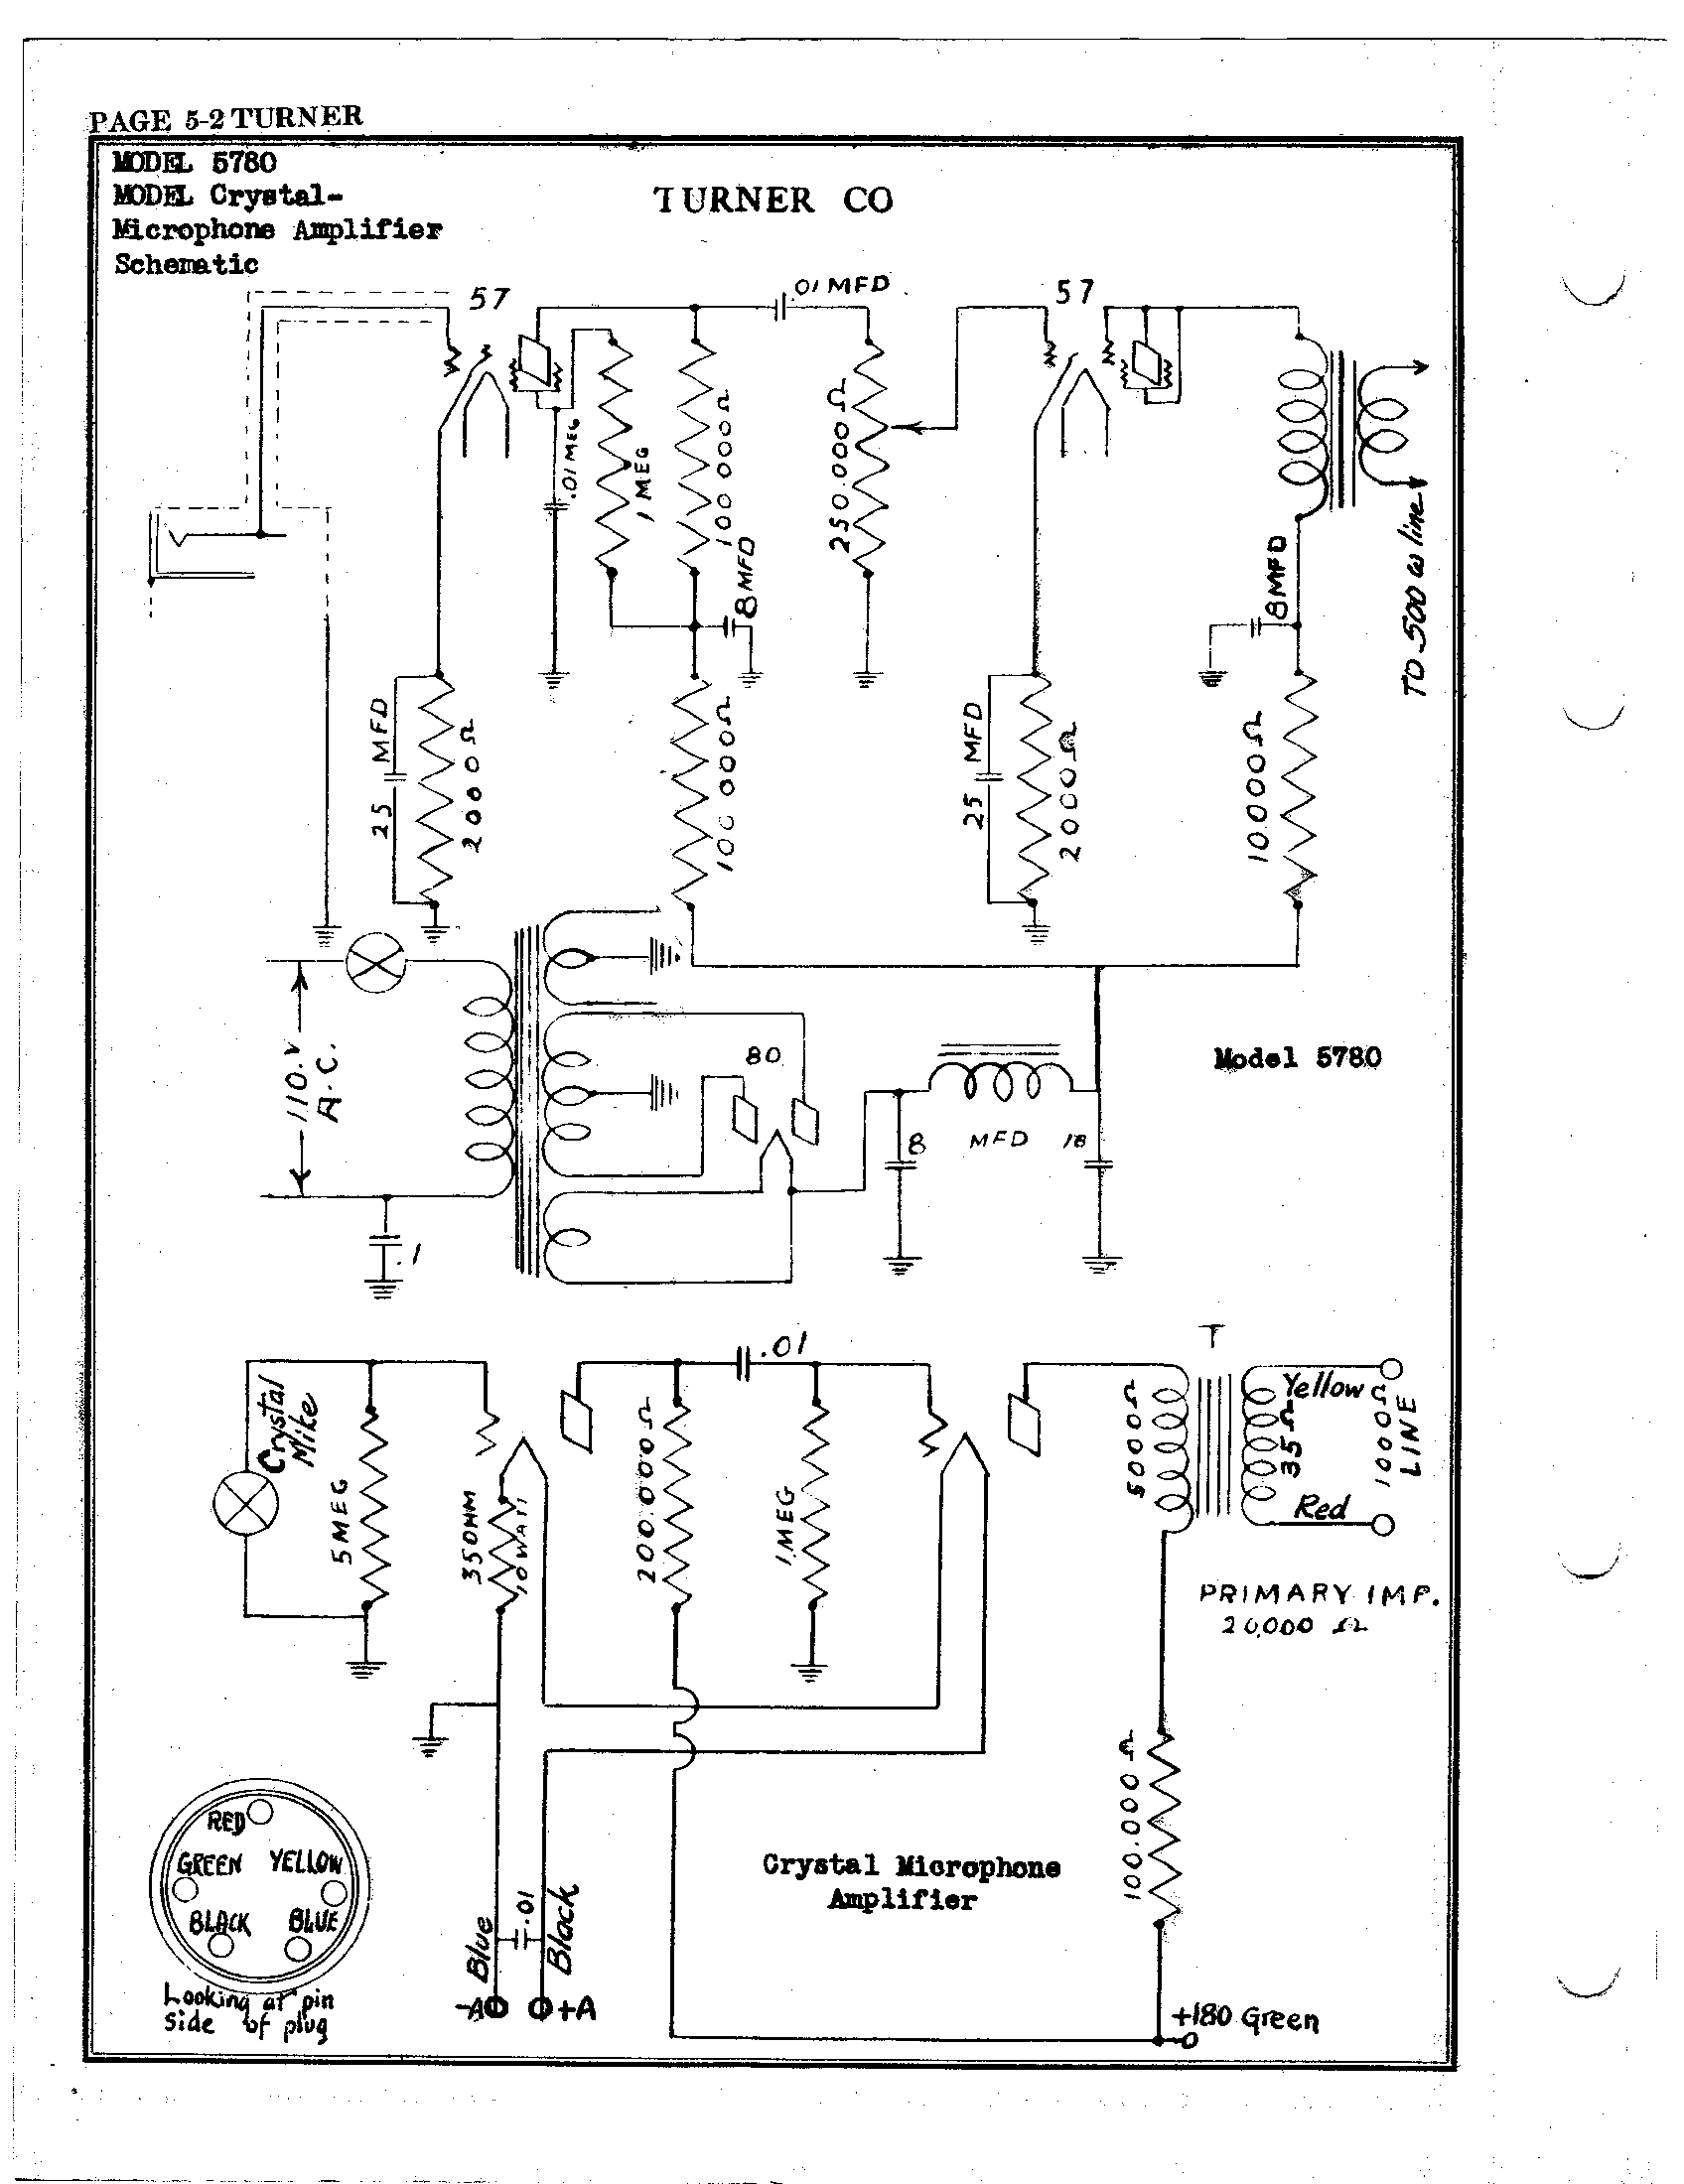 Cool Turner Mic Wiring Diagrams Basic Electronics Wiring Diagram Wiring 101 Photwellnesstrialsorg